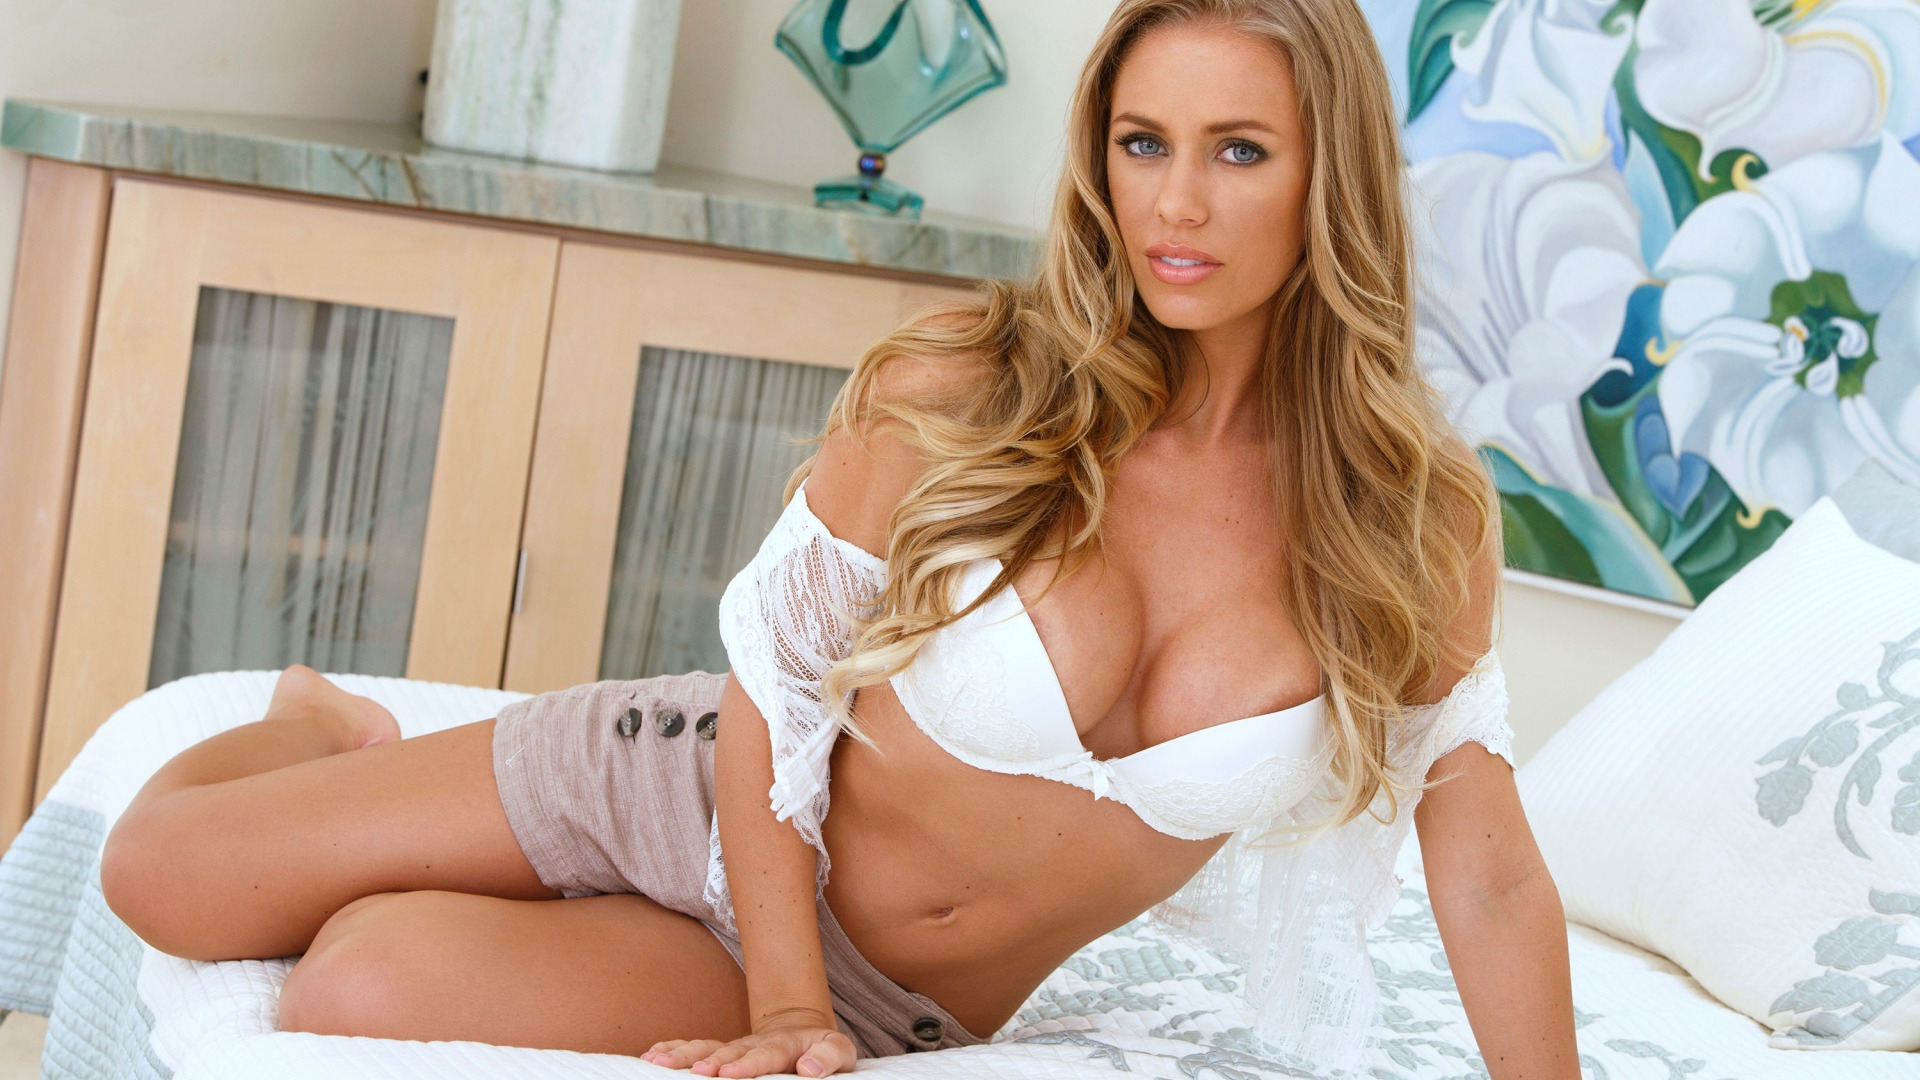 Nicole aniston hd фото